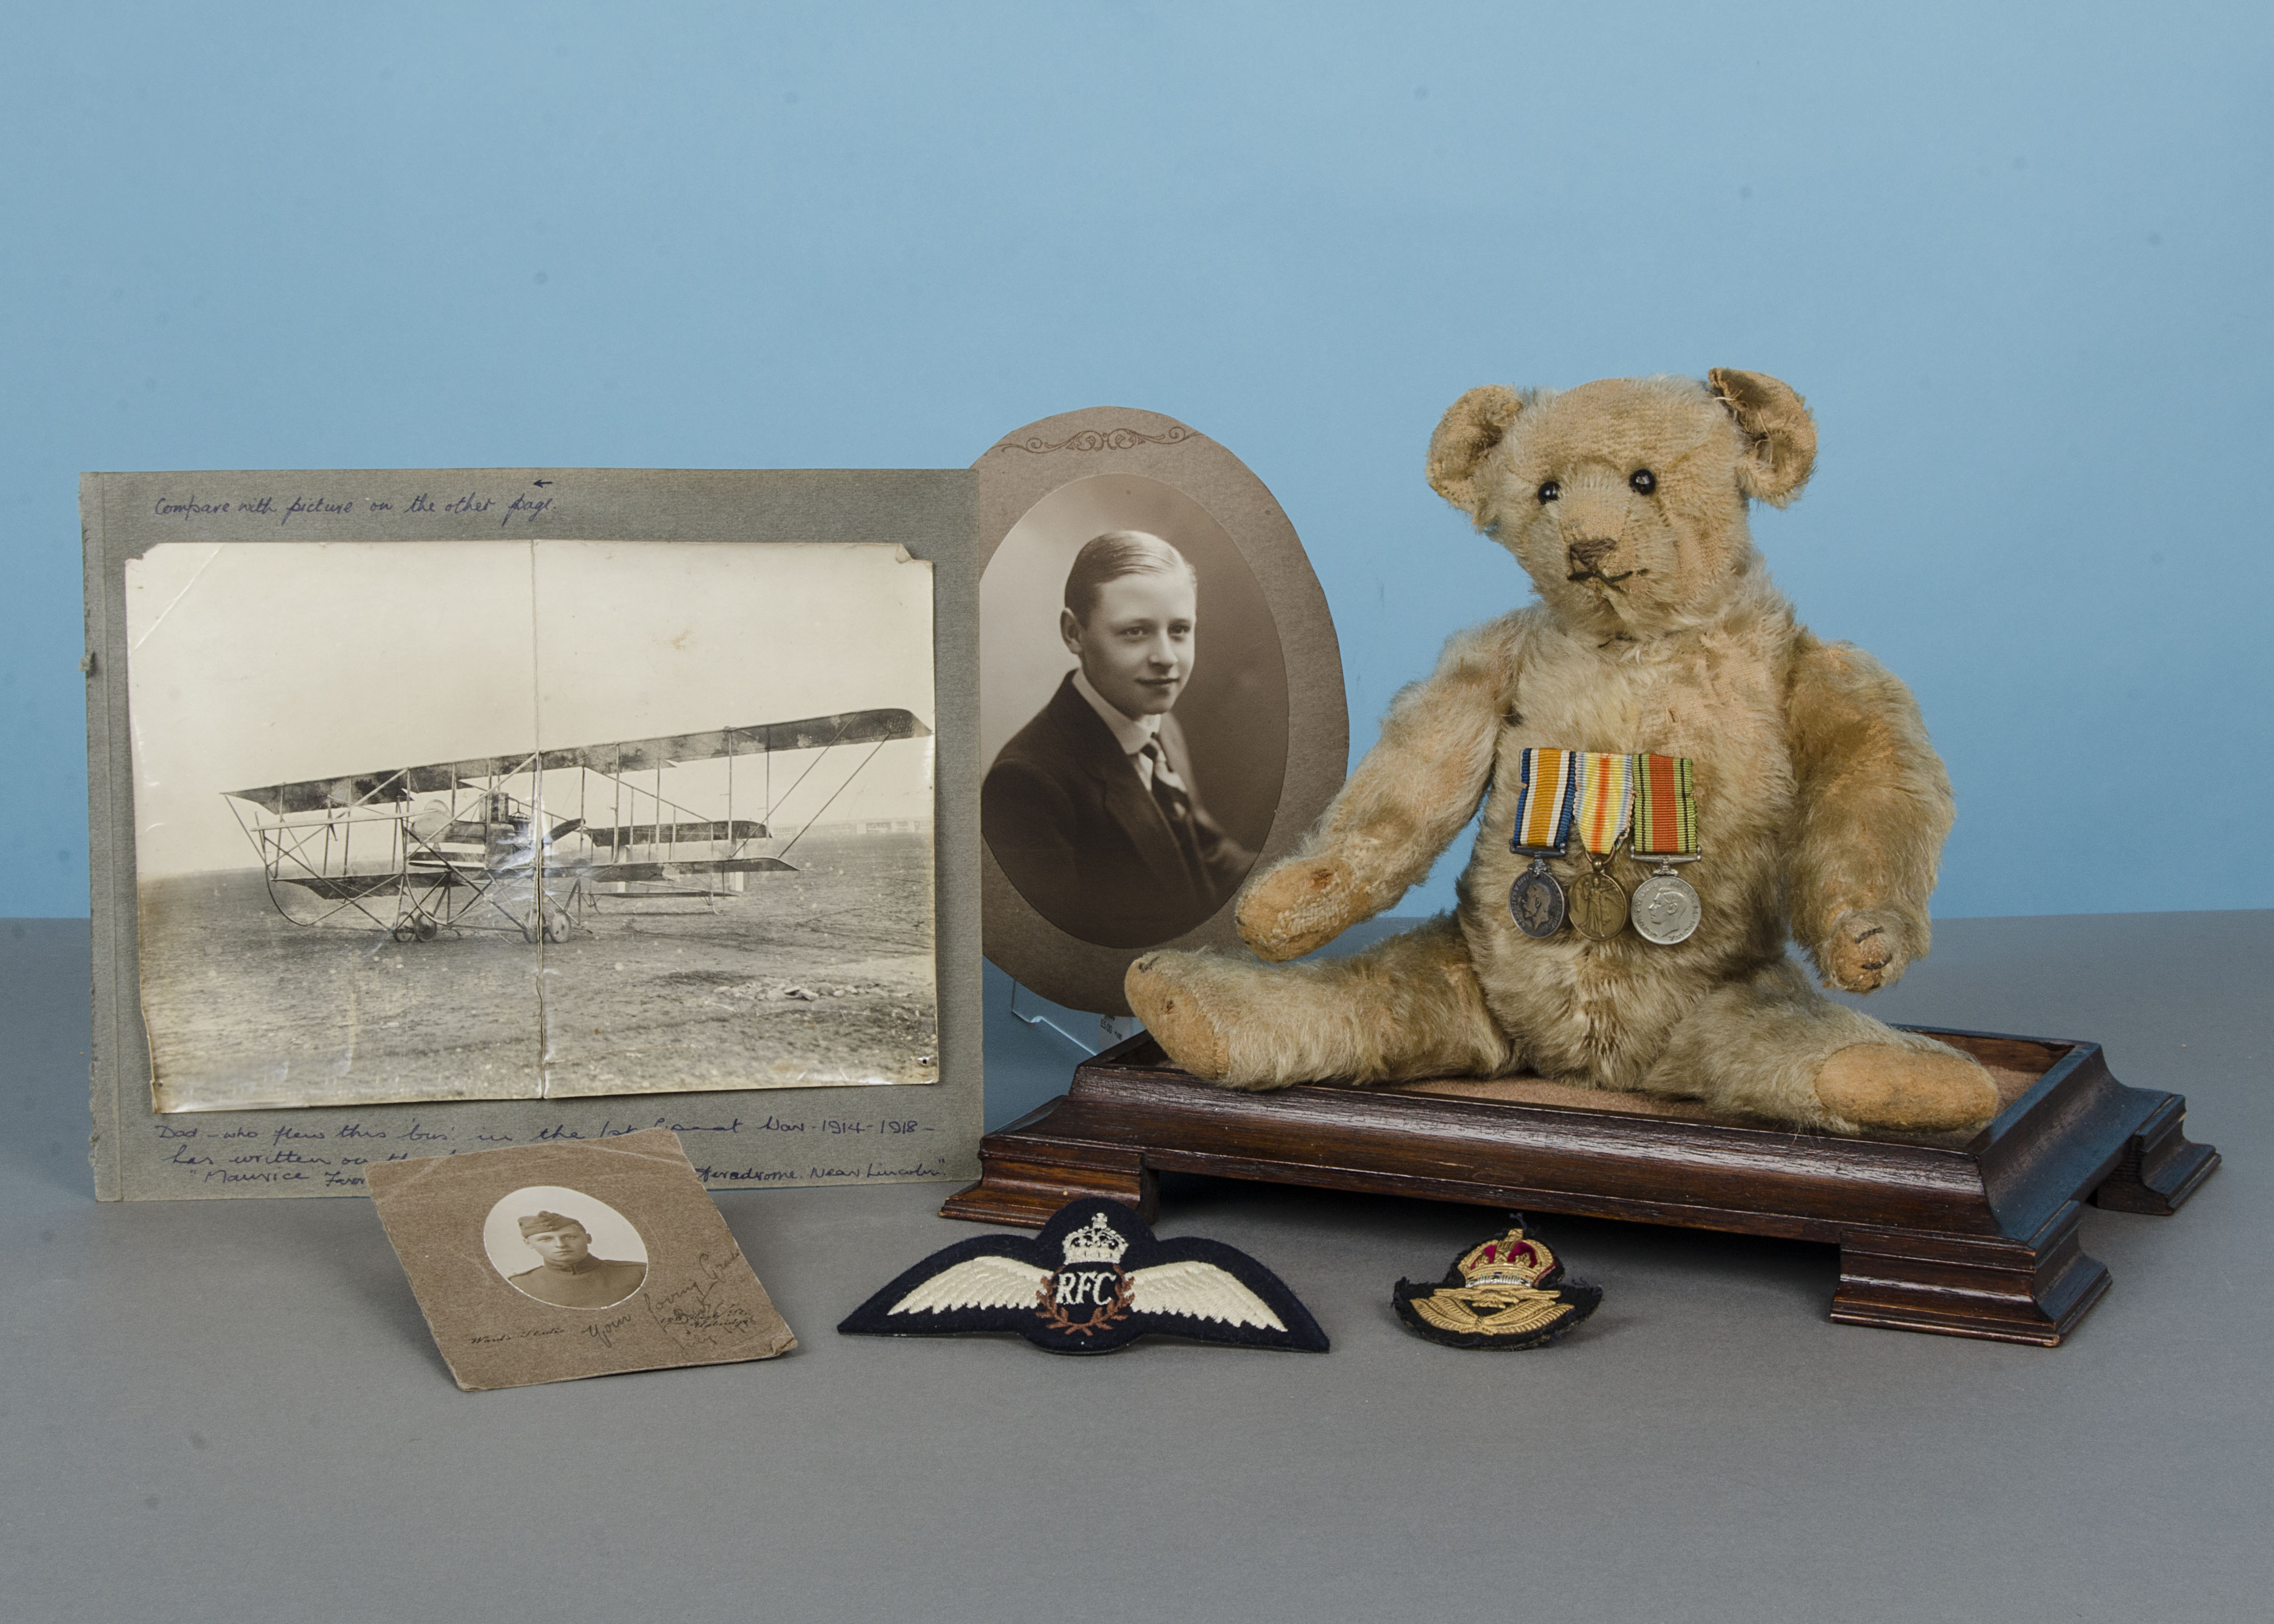 Lot 245 - 'Squadron Leader Ted', Captain S H (Bert) Moy's historically-interesting mascot from the 1st World